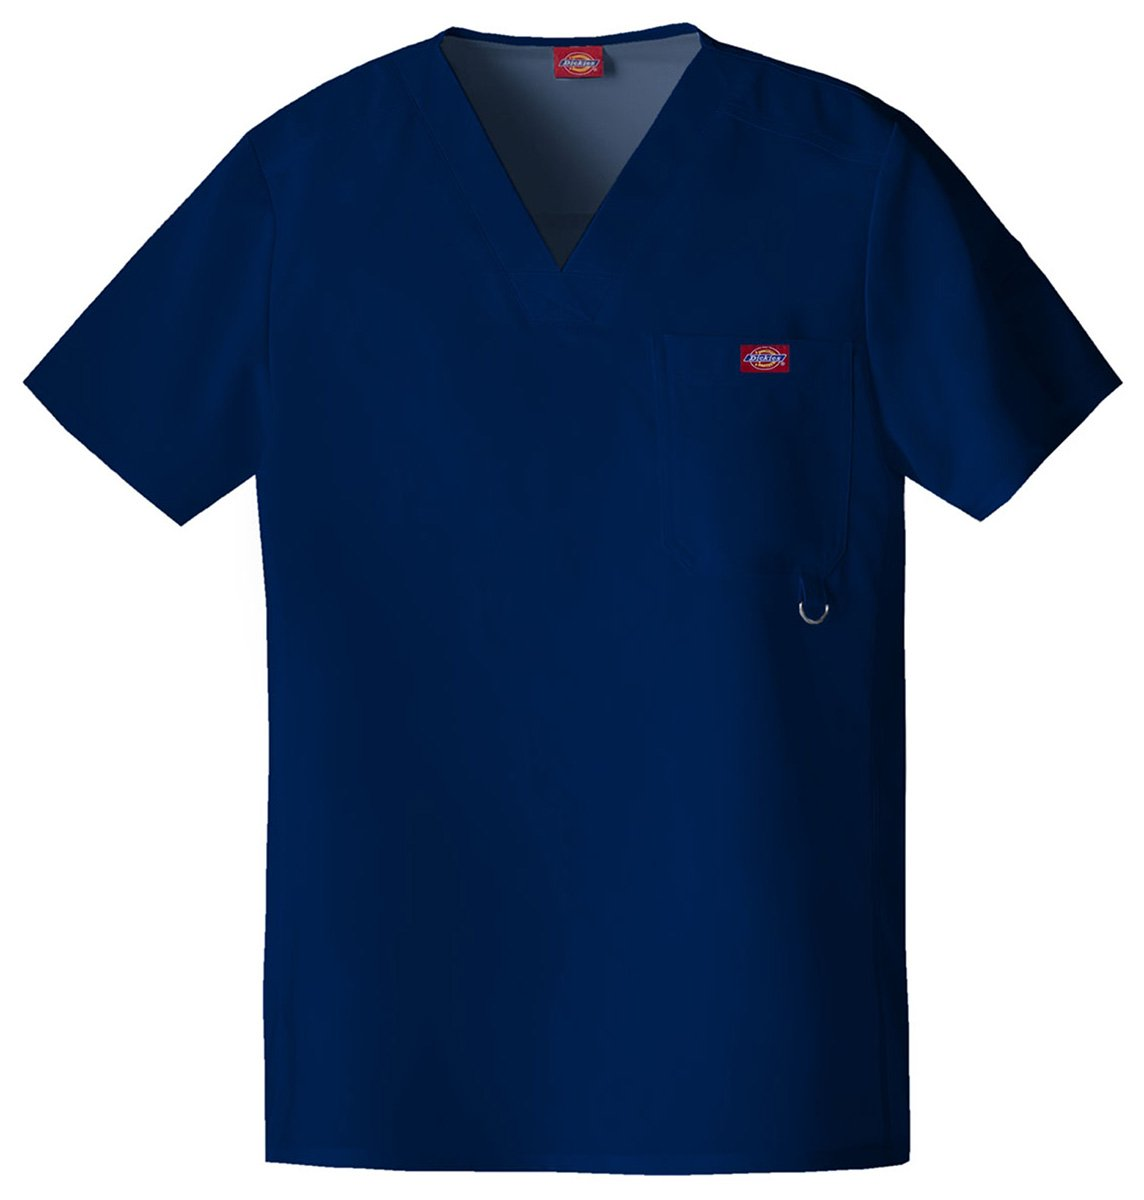 Dickies Men's Top-Stitched V-Neck Top_D-Navy_XX-Large,81910